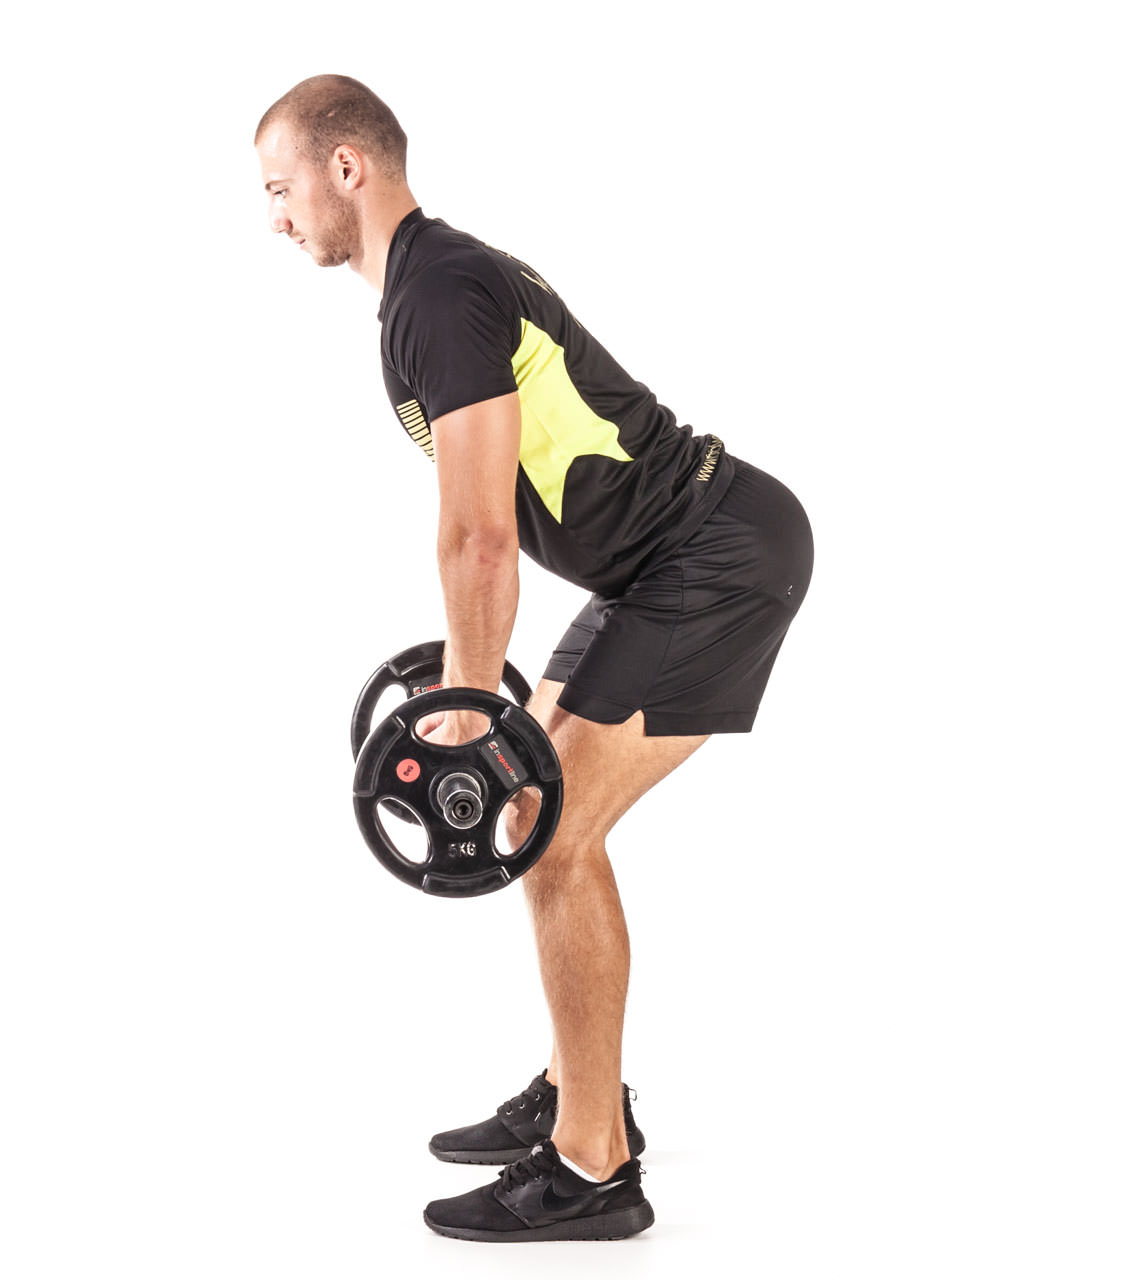 Bent Over Barbell Row frame #4